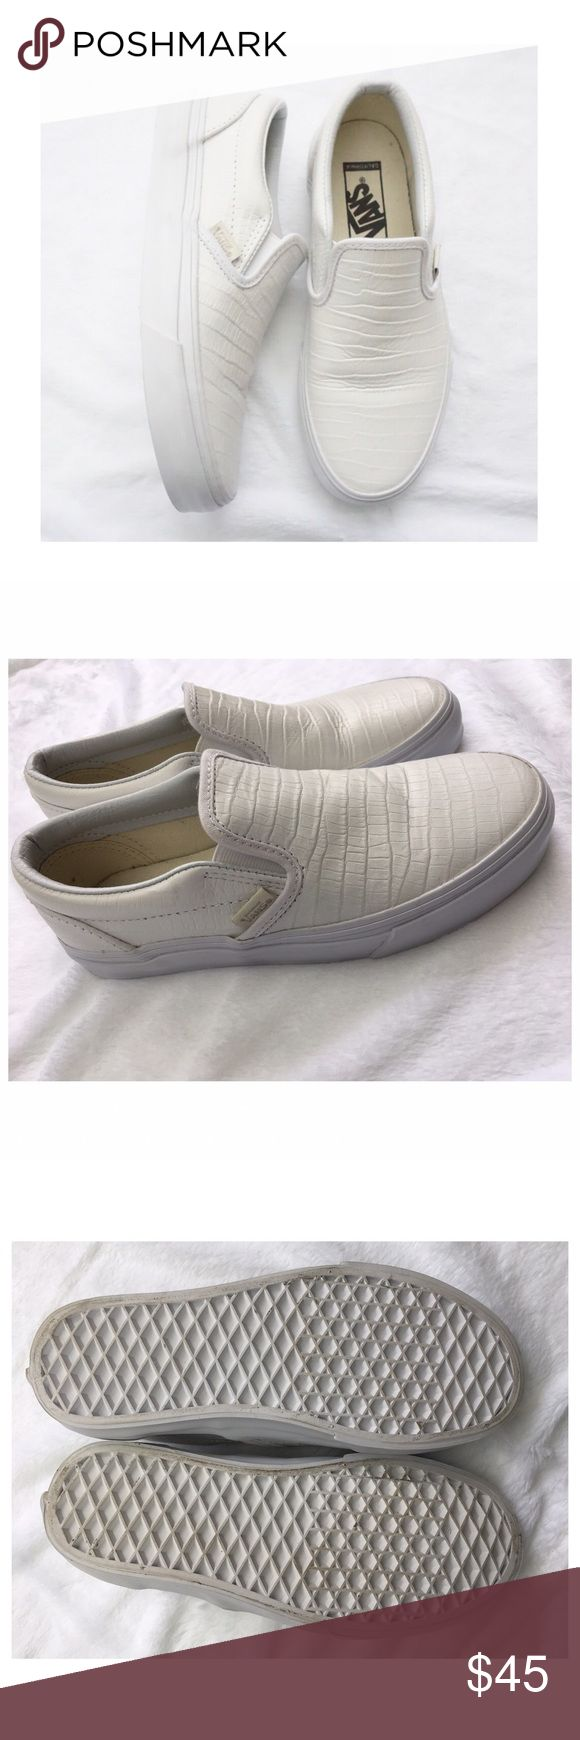 Off-White Faux Leather Vans Slip-on Shoes Listing includes 1 item: size 6 off-white faux leather vans slipon shoes. It has a faux snake skin pattern on the shoes. Worn once, but still in great condition! Does not include vans box. Smoke free home. No trades. Vans Shoes Sneakers